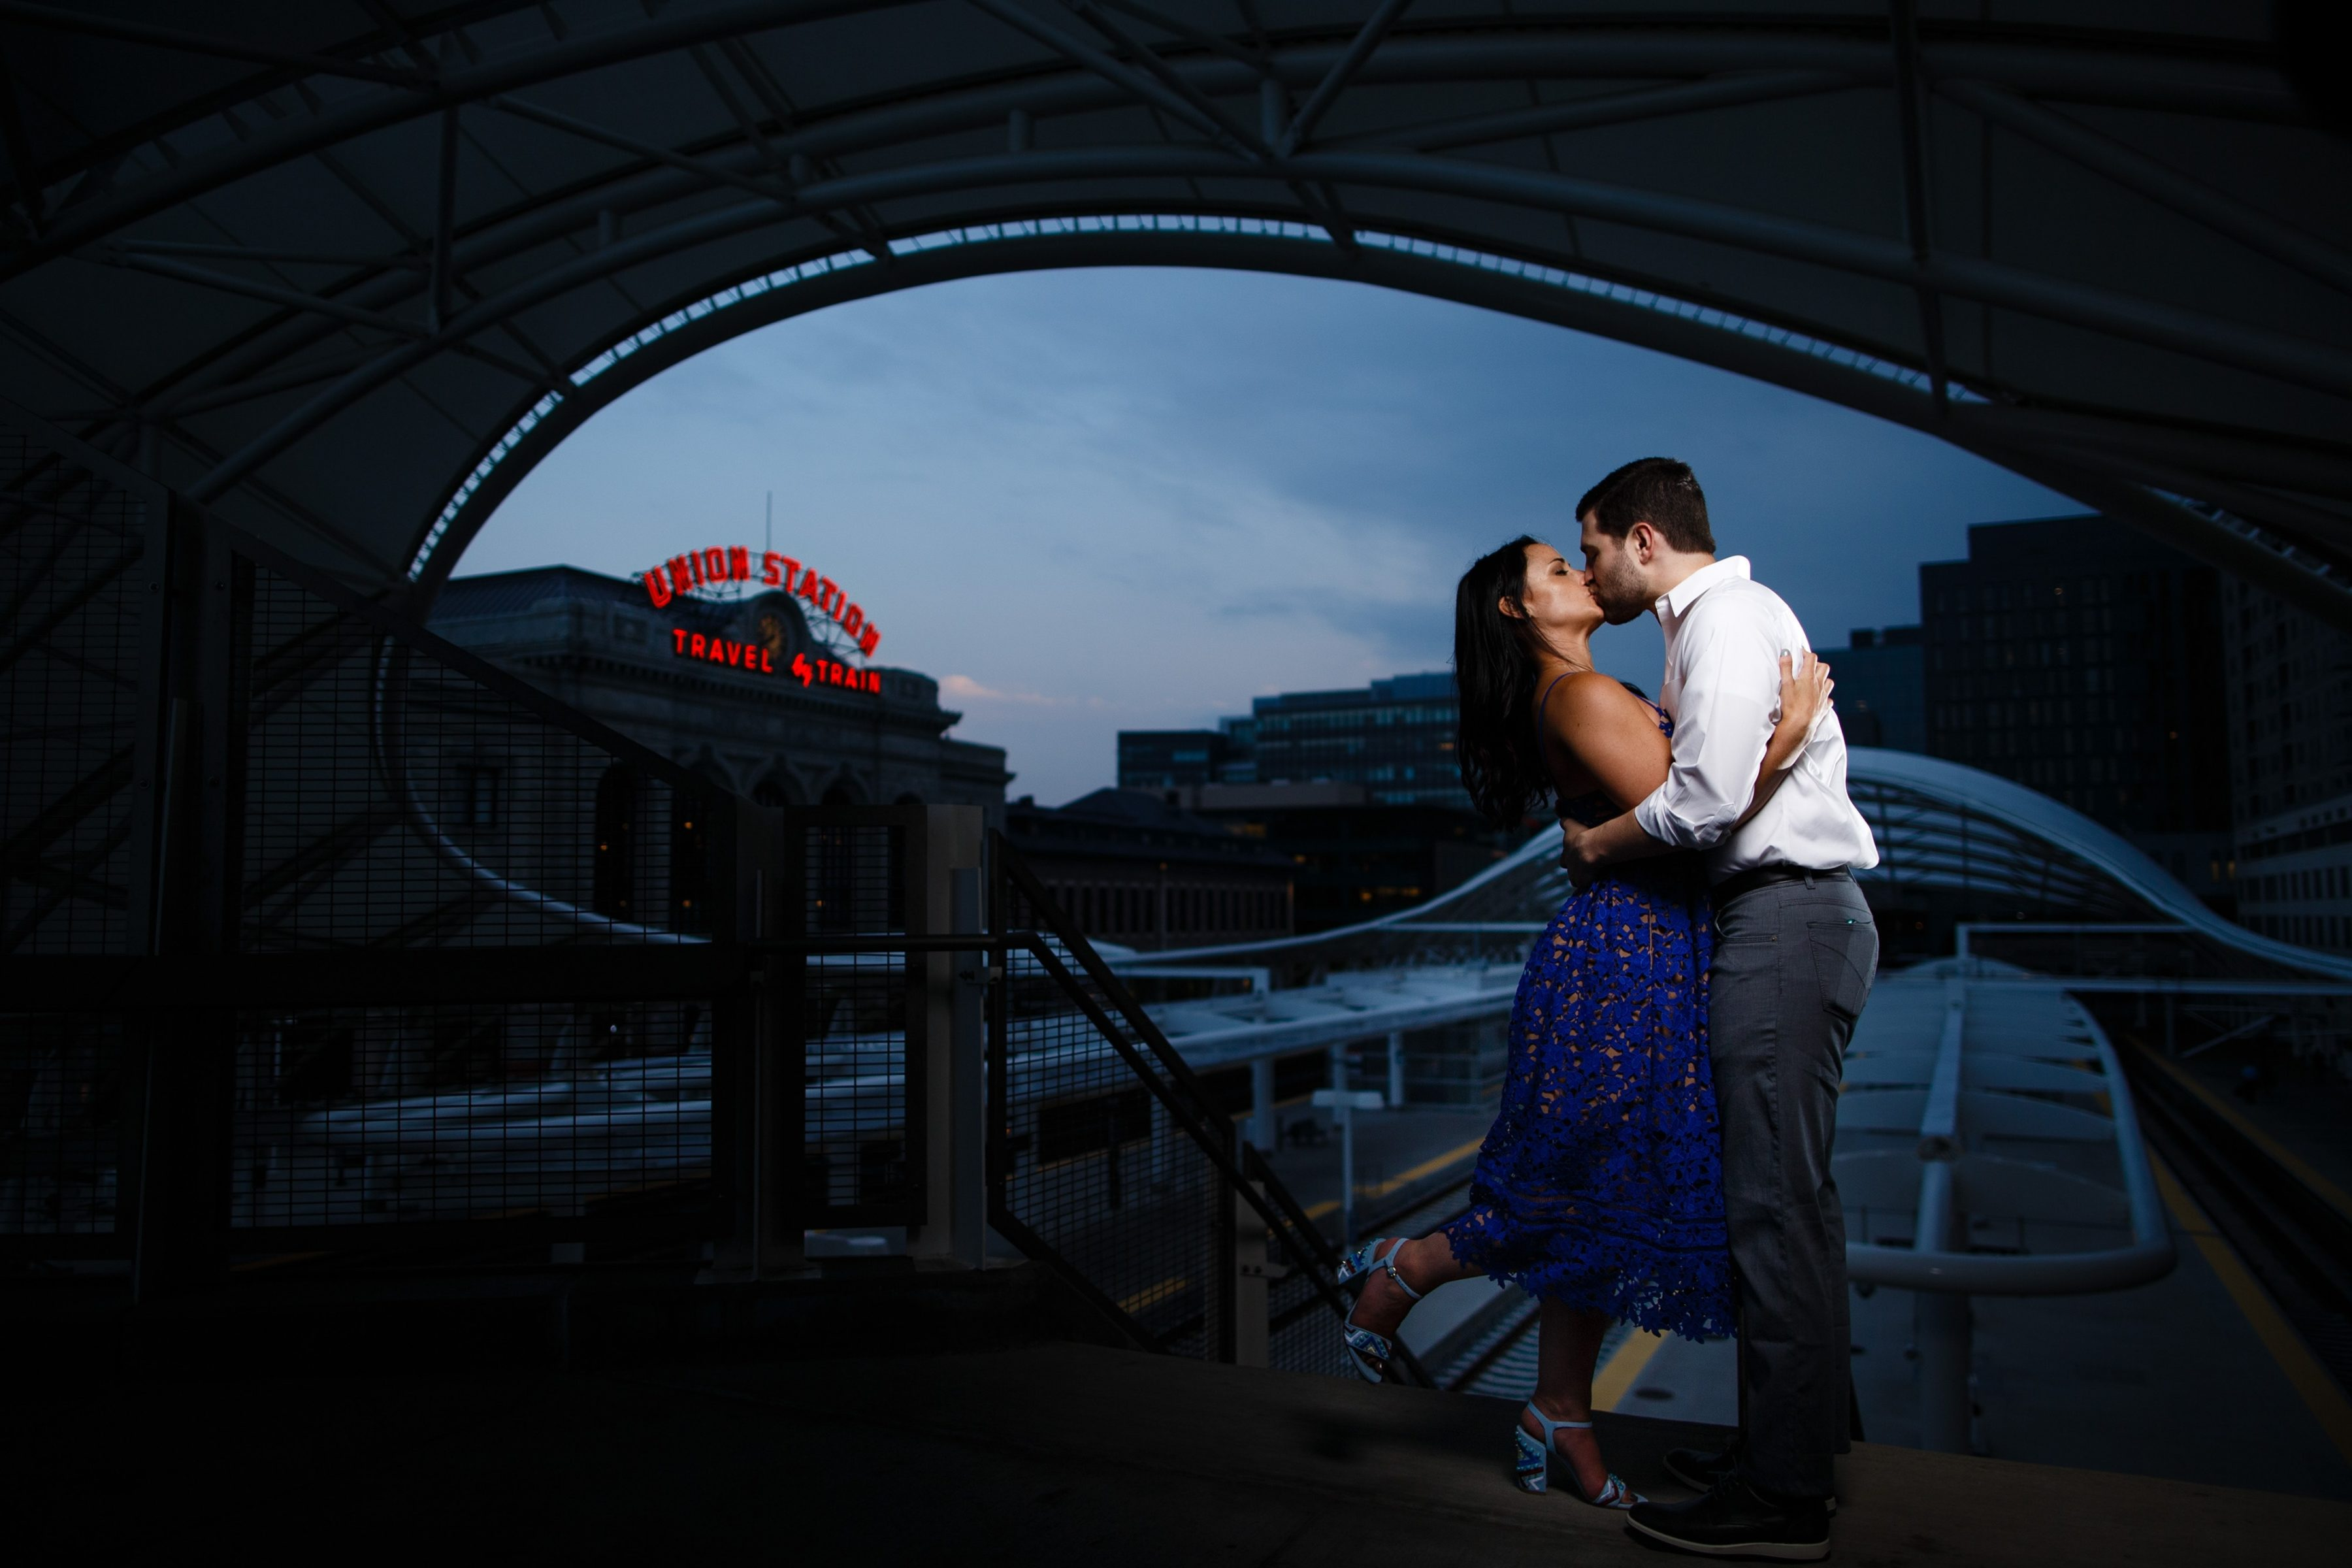 Danielle and Jordan share a kiss on the platform outside Union Station during their engagement photos in lower downtown Denver